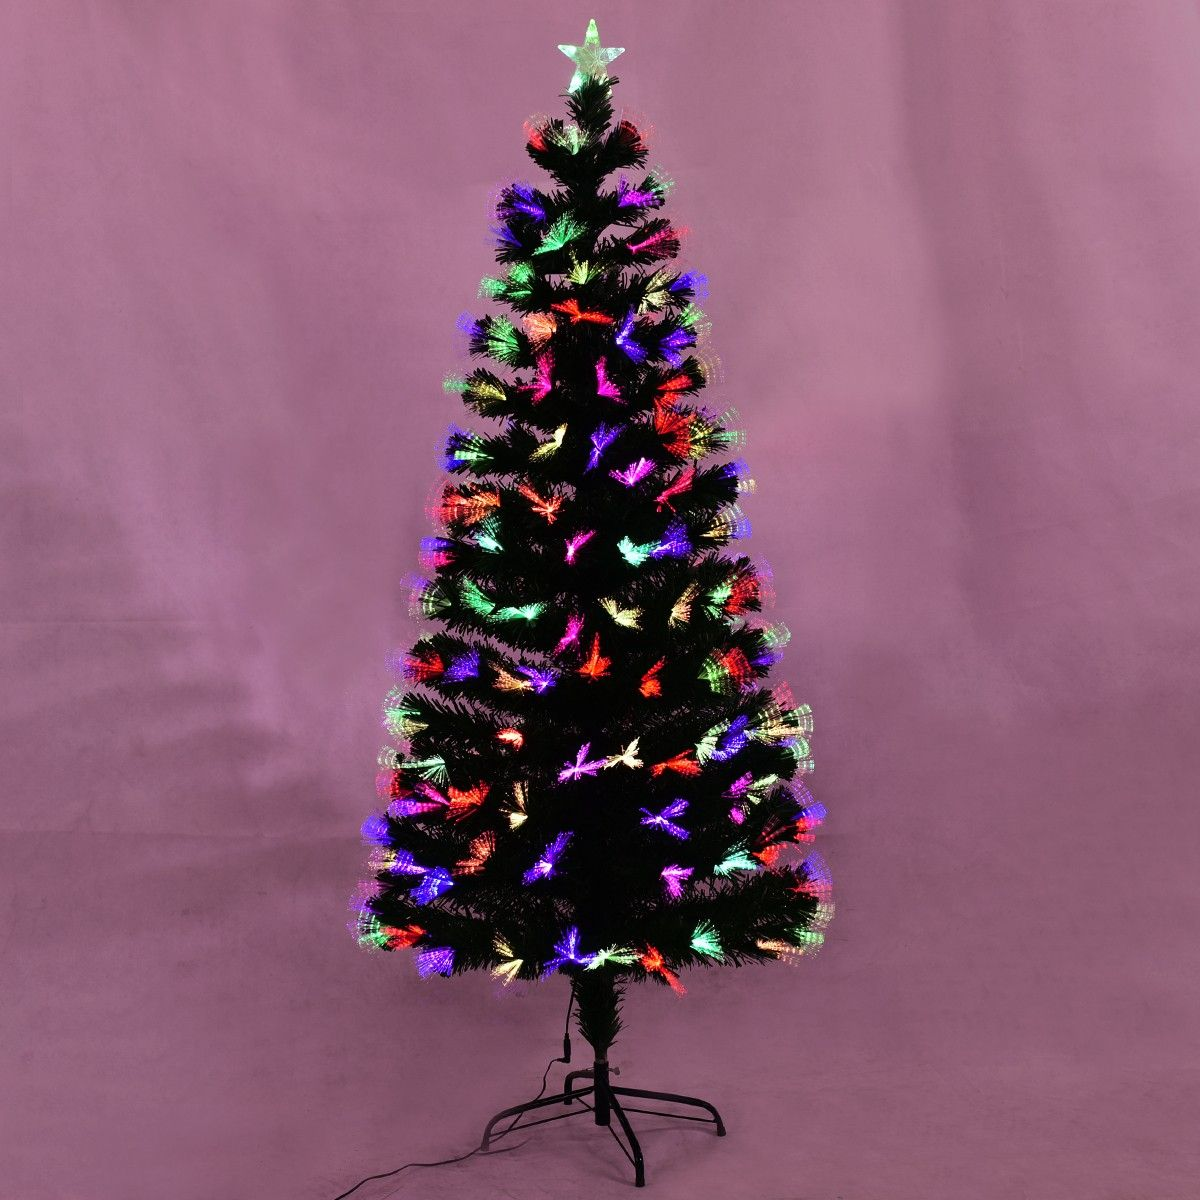 5b37d9578cd2 Costway LED Blossom Effects Large Fiber Optic Artificial Christmas Tree  This fiber optic #xmas tree with blossom effect extremely suits to decorate  your ...